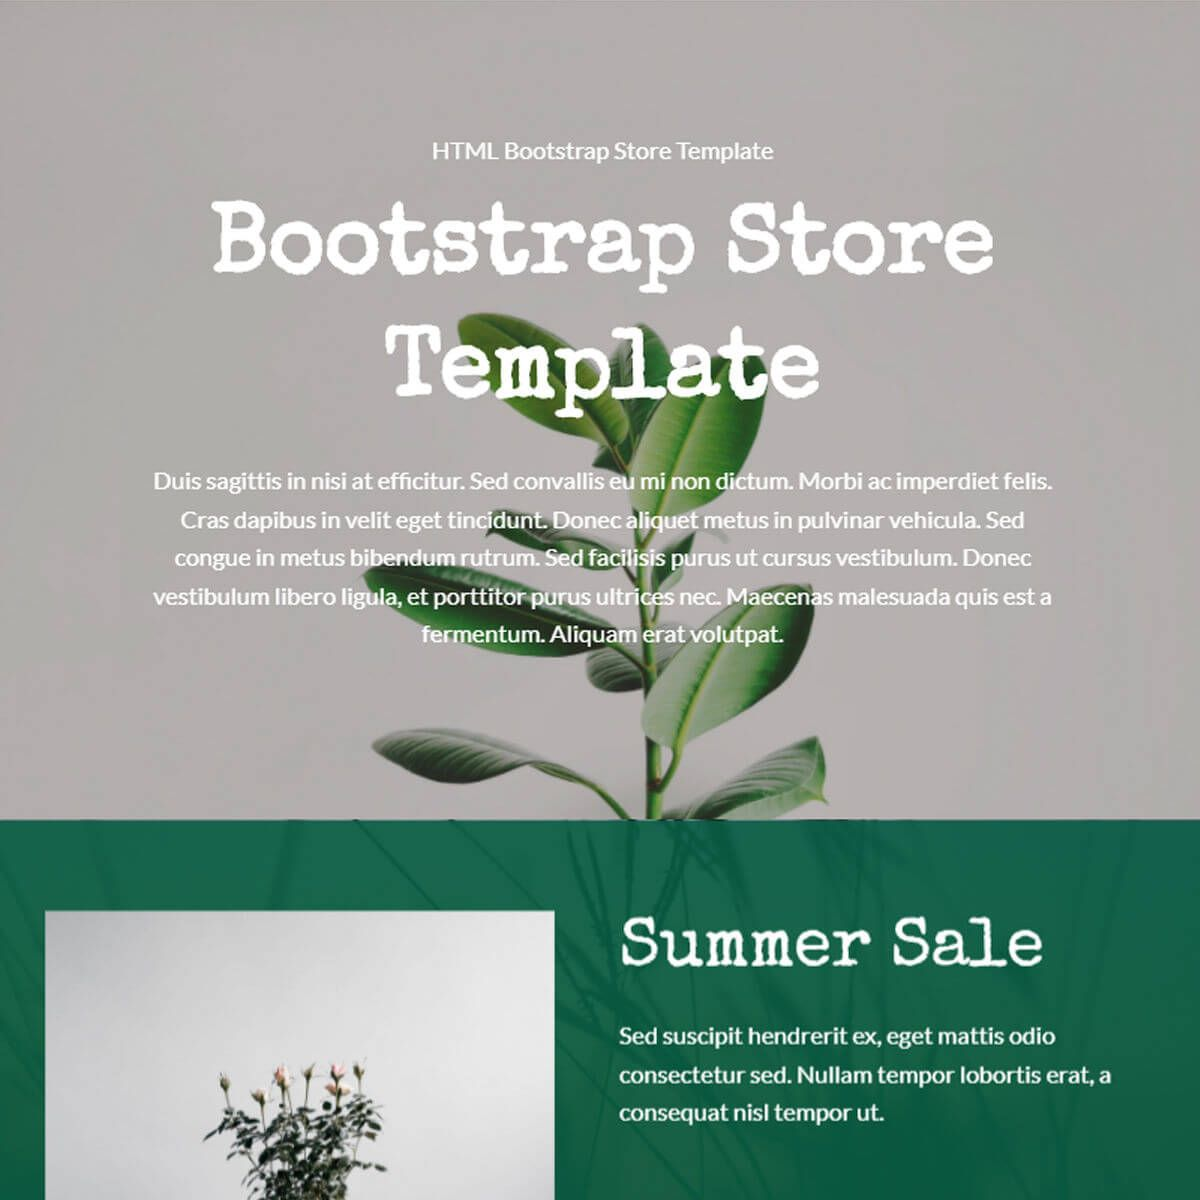 HTML Bootstrap Store Template